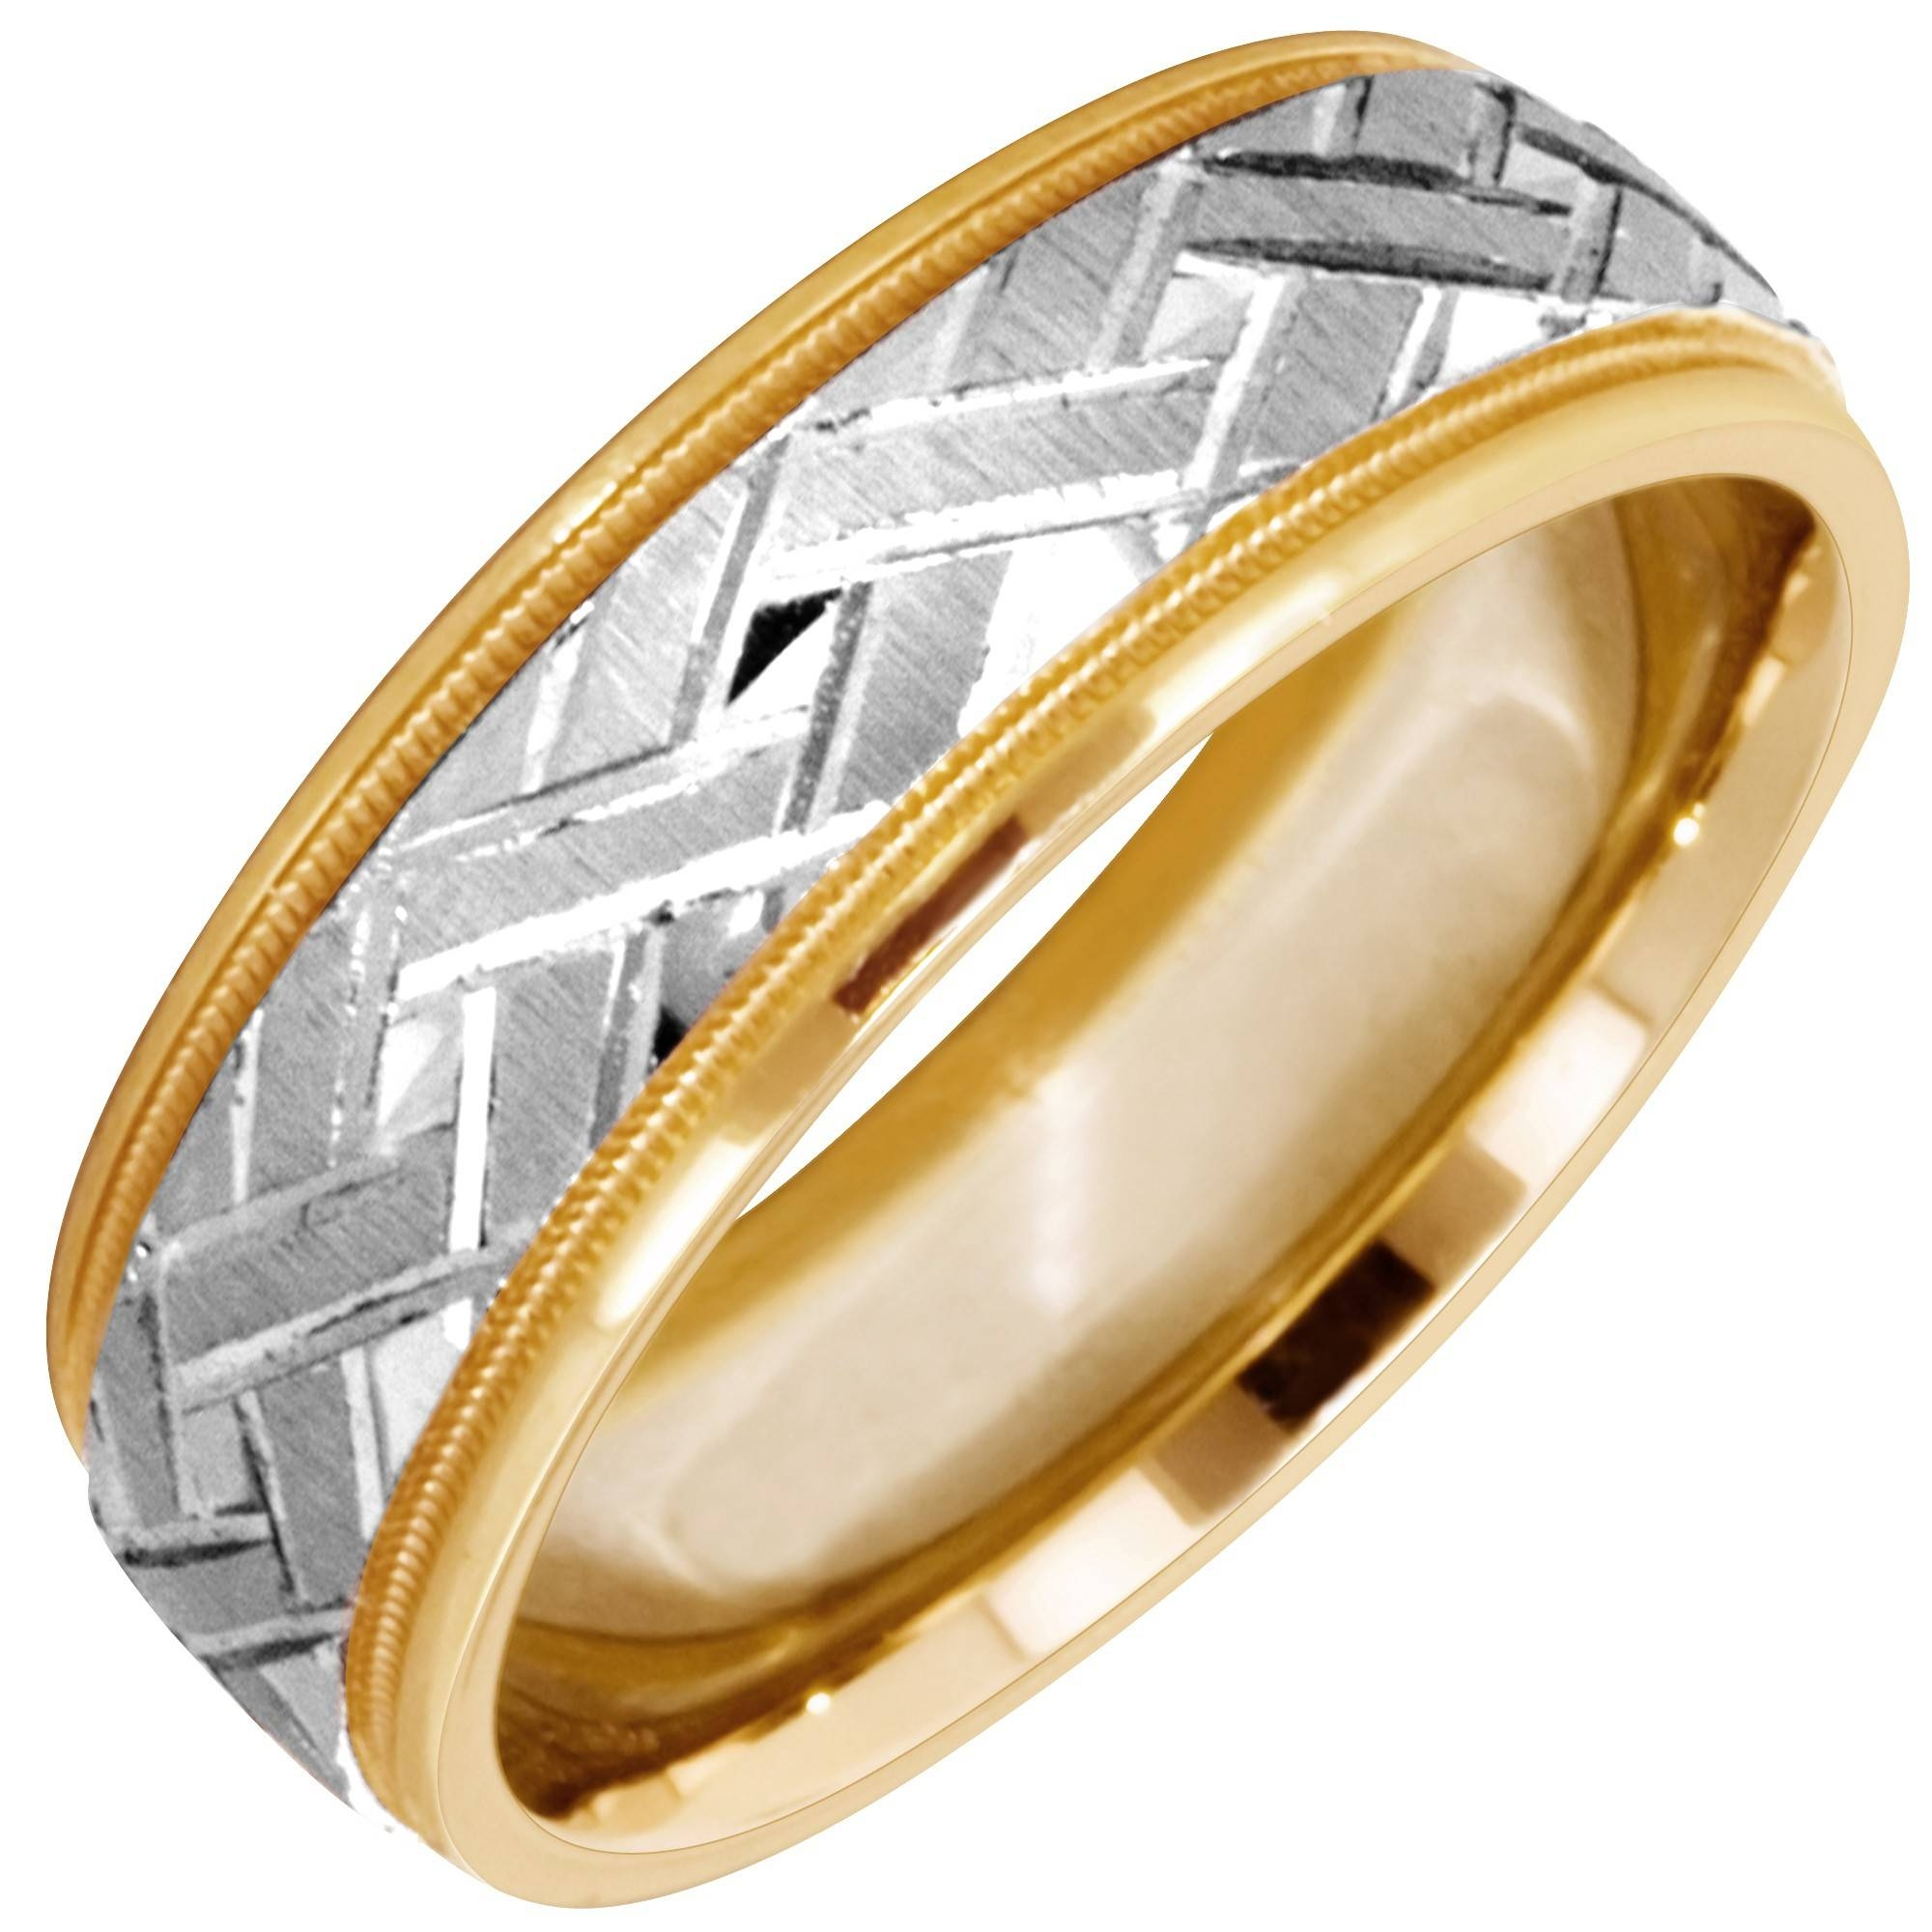 Artcarved Intrigue Mens Wedding Band In 14Kt Yellow And White Gold With Regard To Artcarved Men Wedding Bands (Gallery 7 of 15)